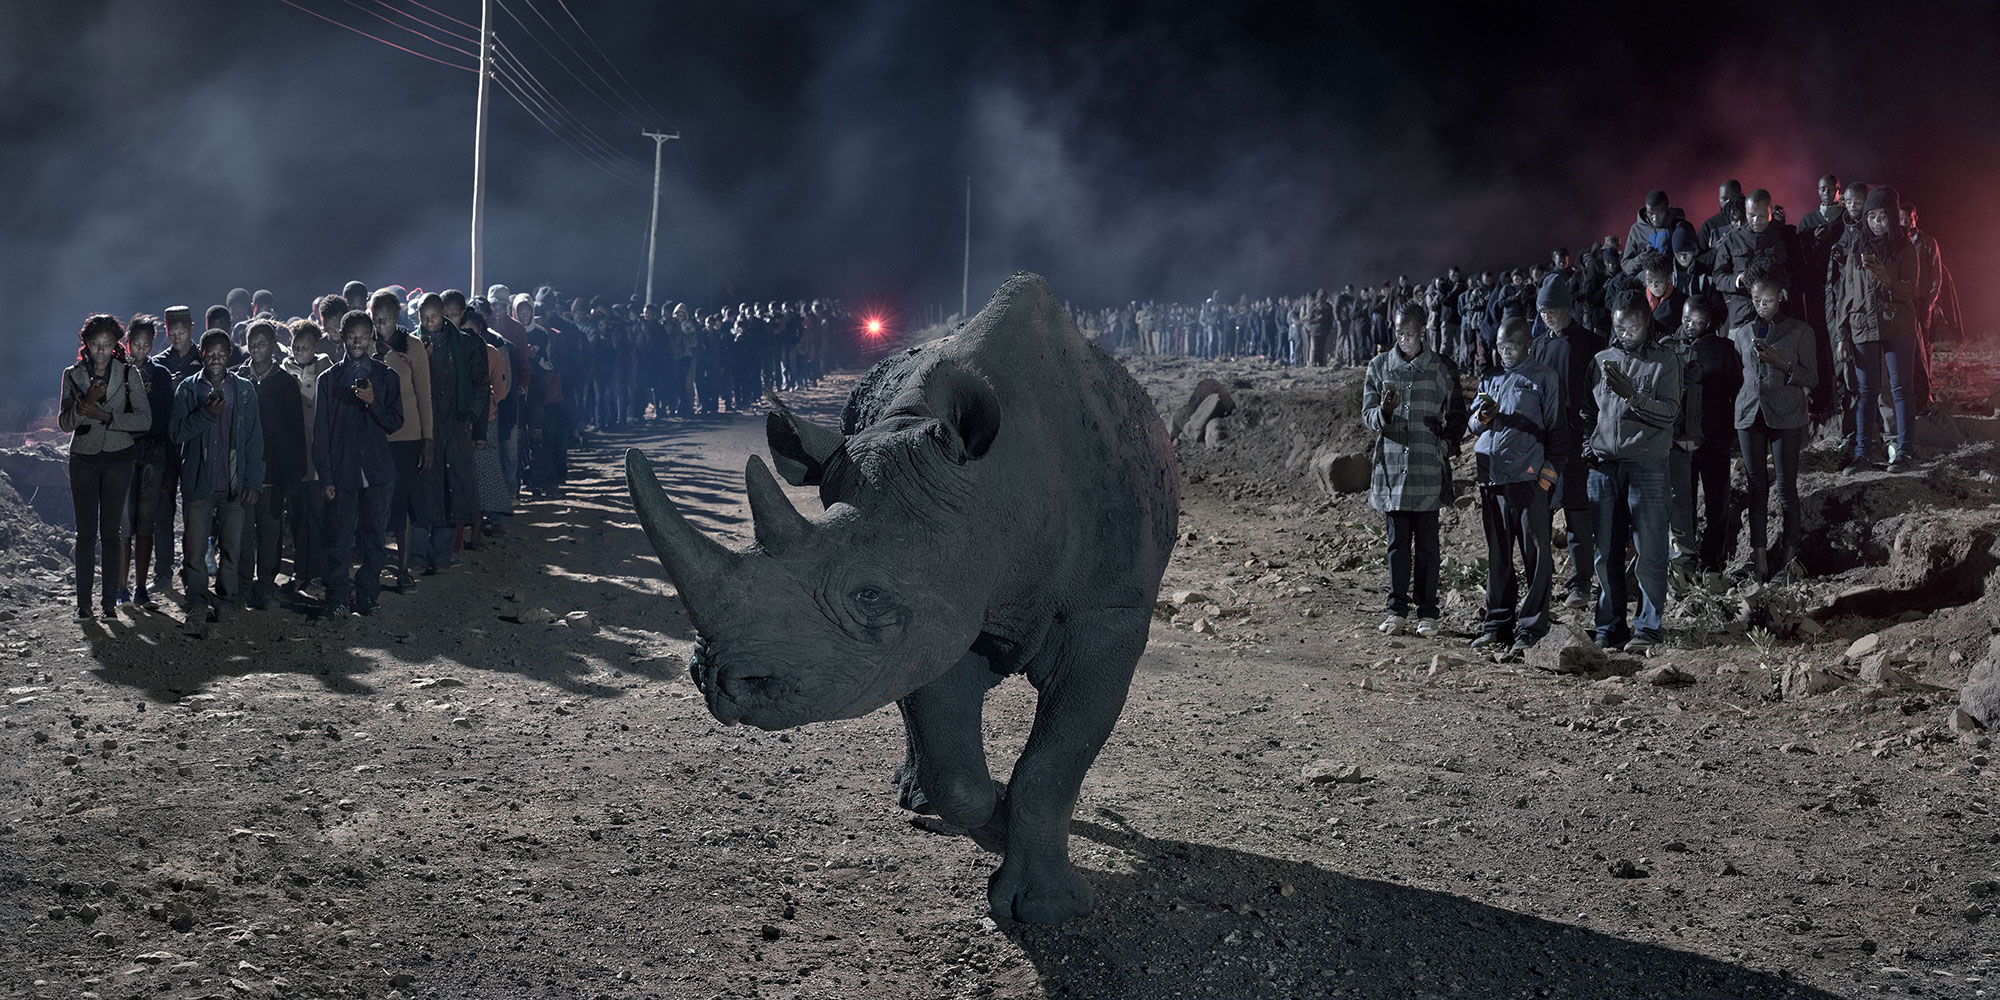 RIVER OF PEOPLE WITH RHINO, 2018